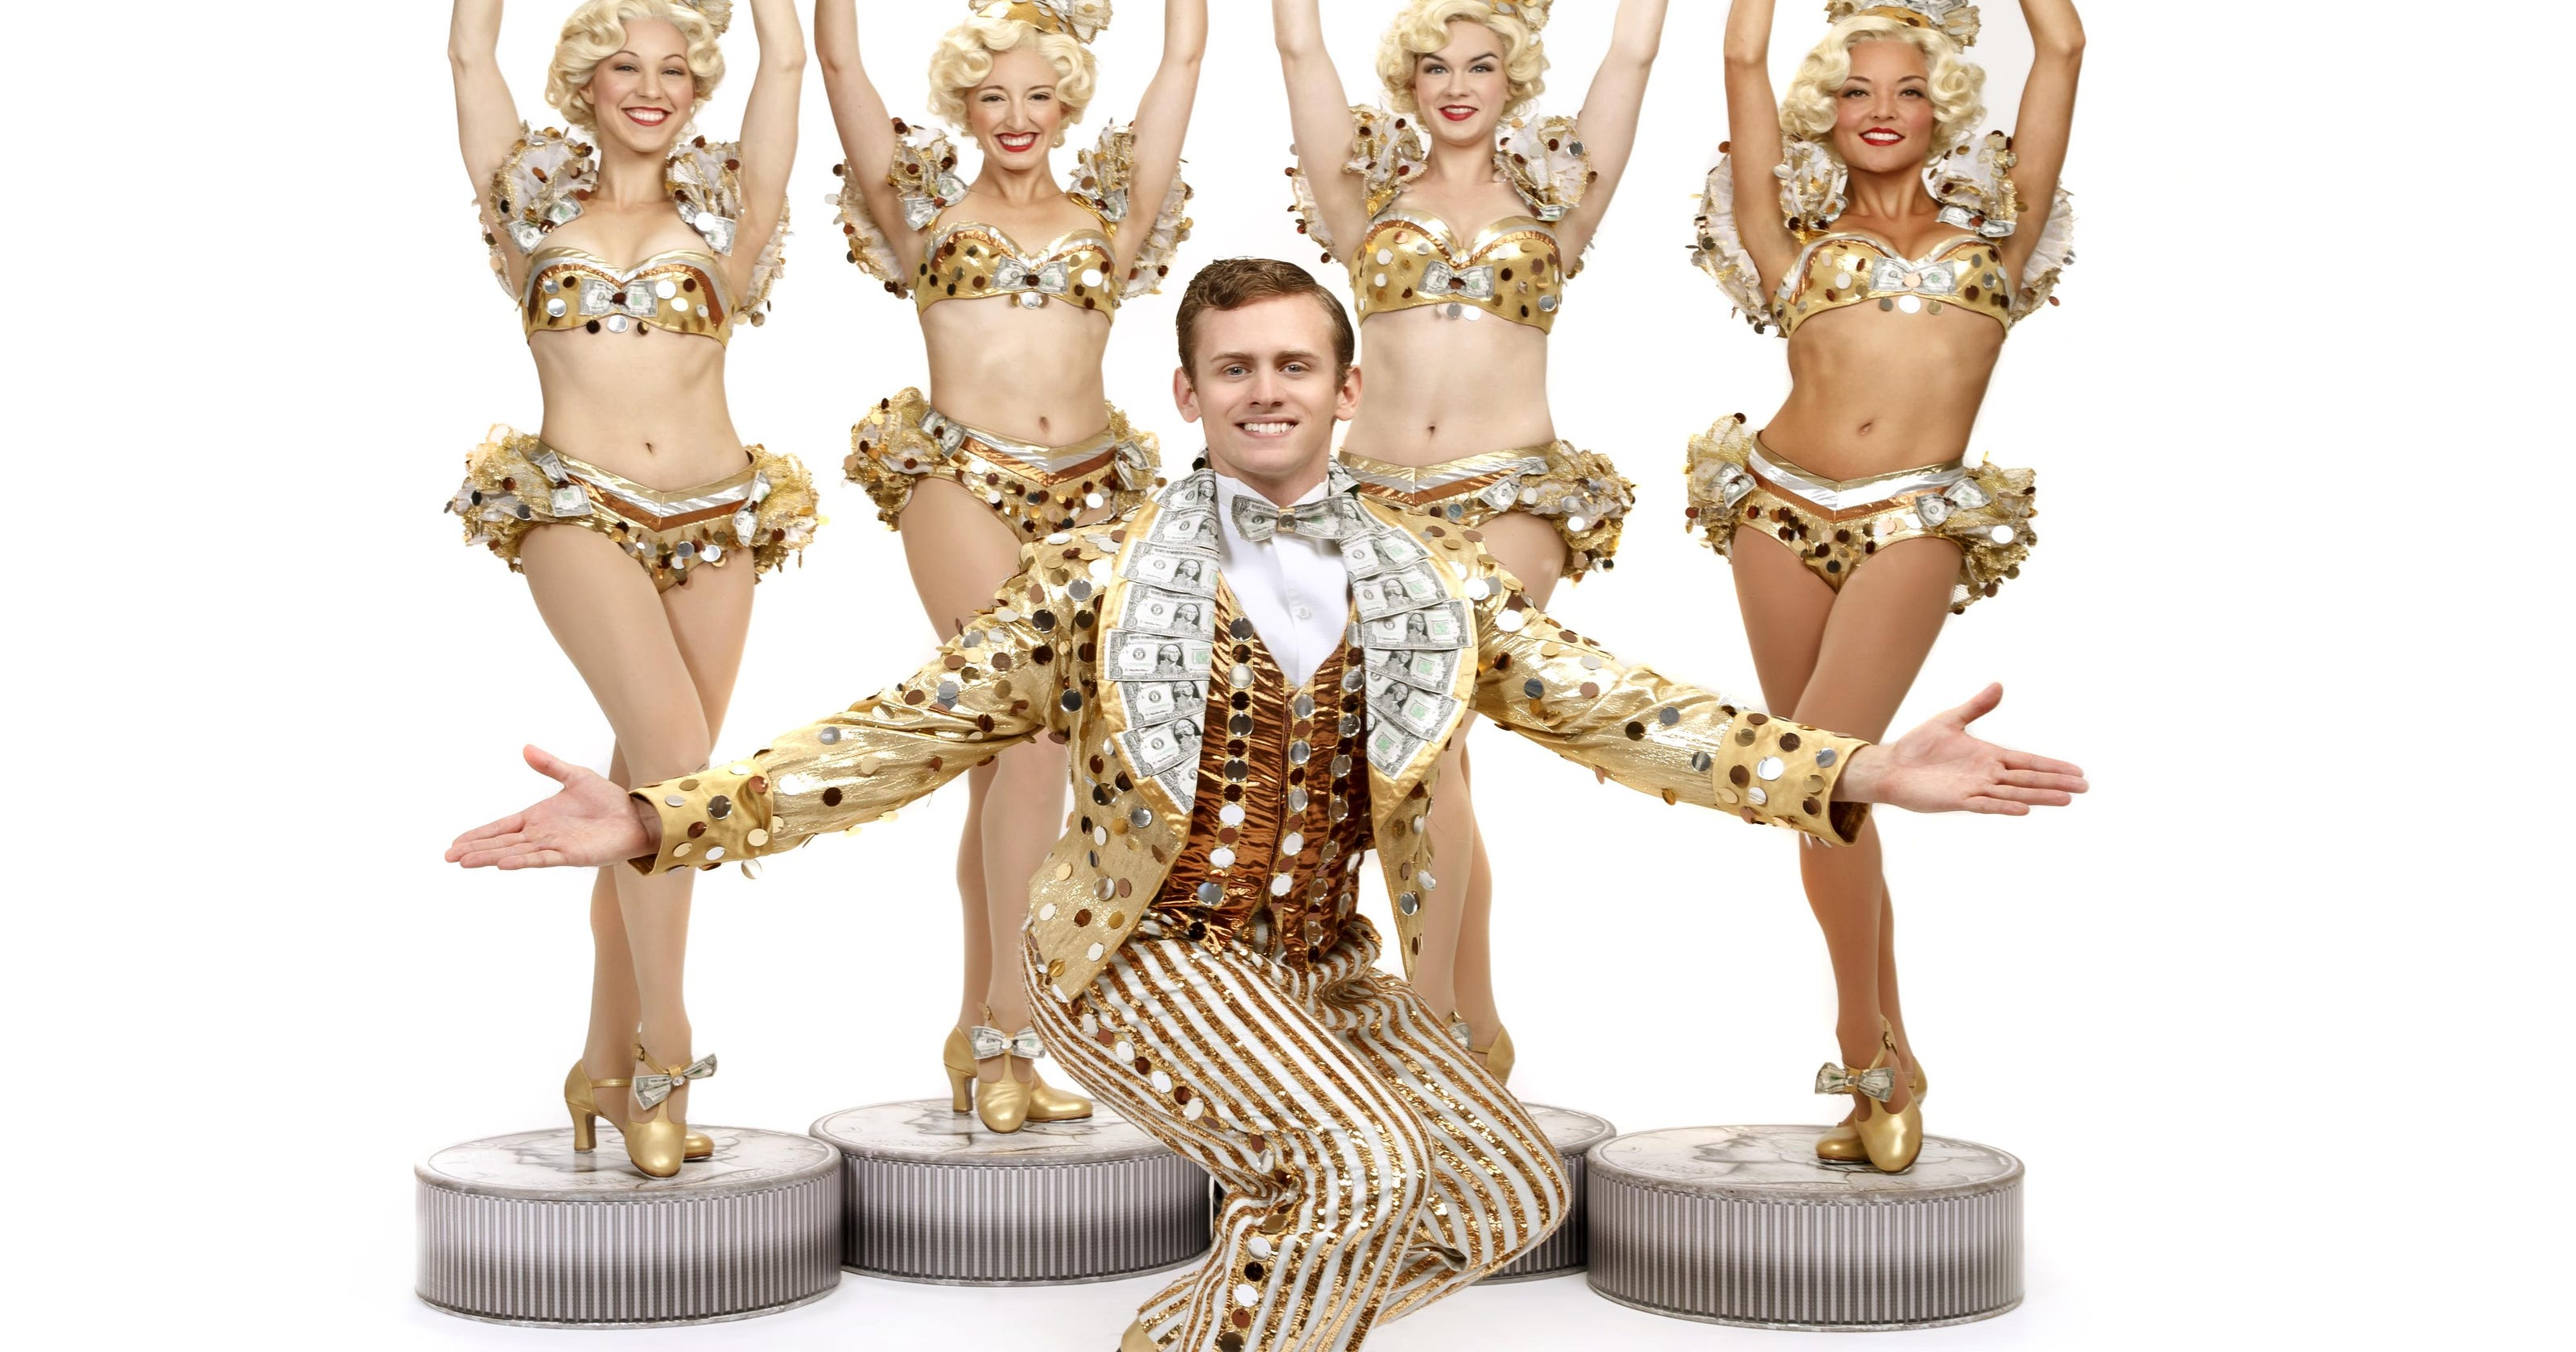 42nd Street' tap dances its way to Valley